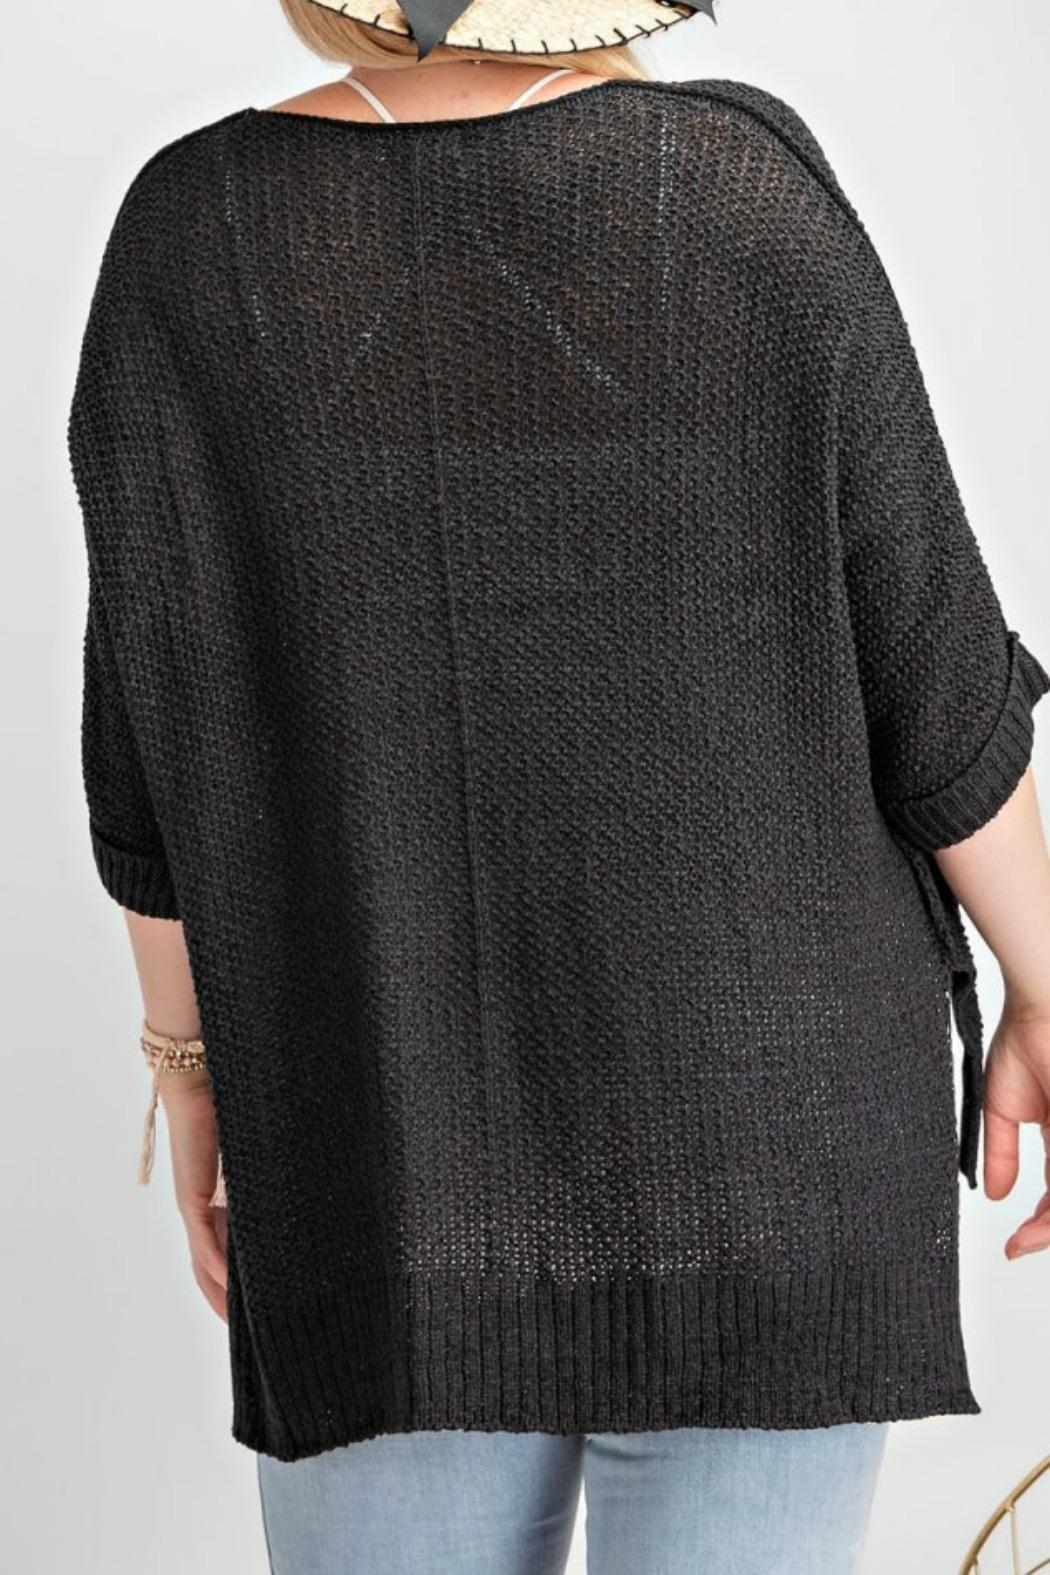 easel Black Sweater Top - Back Cropped Image